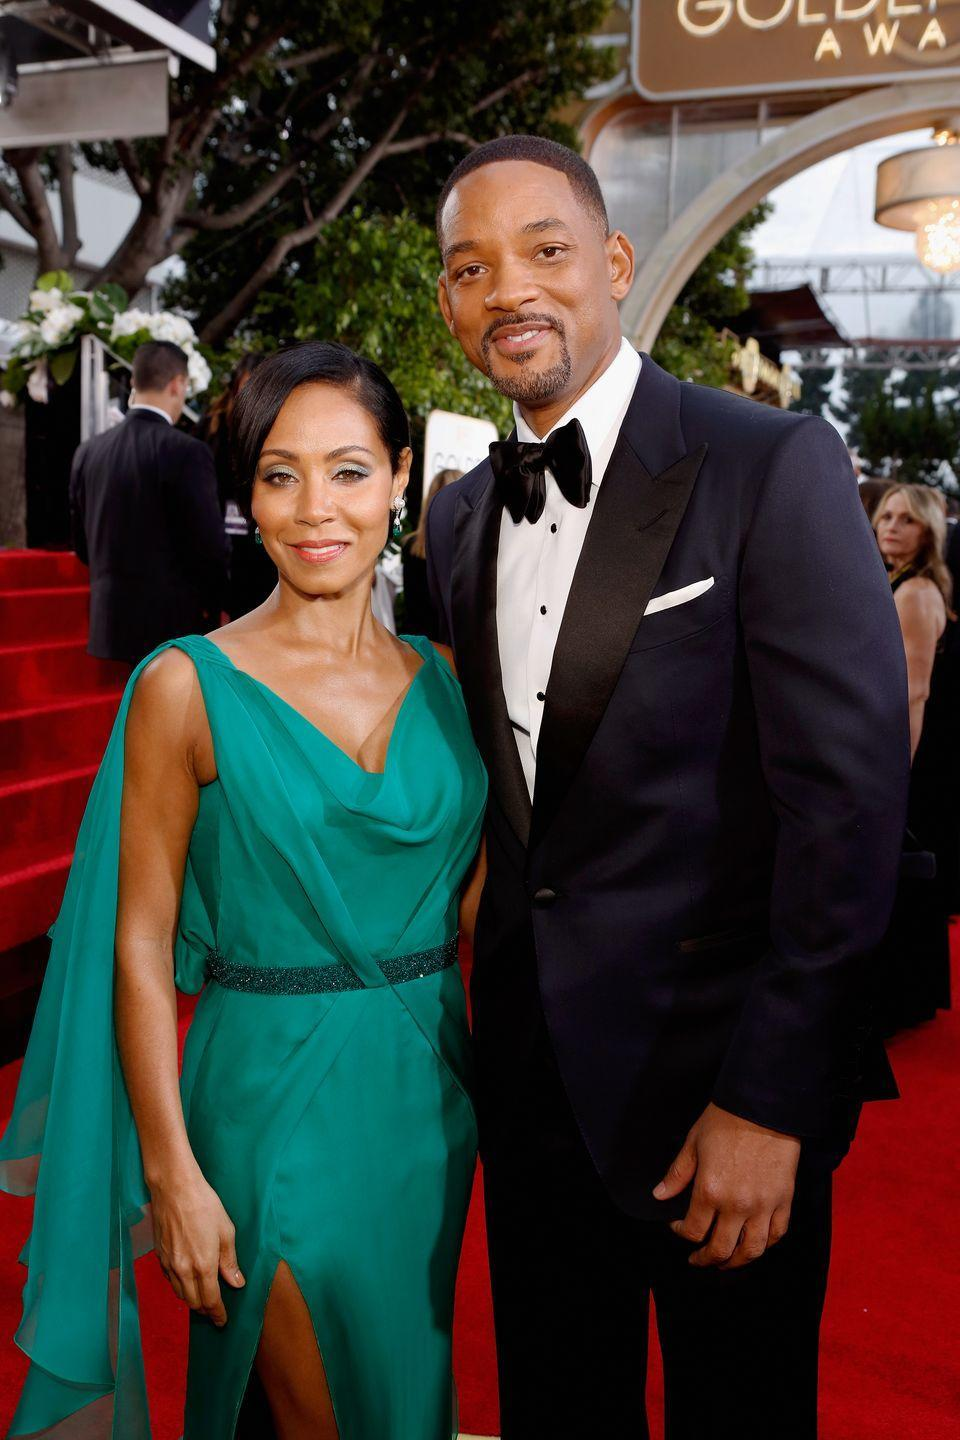 Jada Pinkett Smith First Met Will Smith When She Auditioned To Play His TV Girlfriend